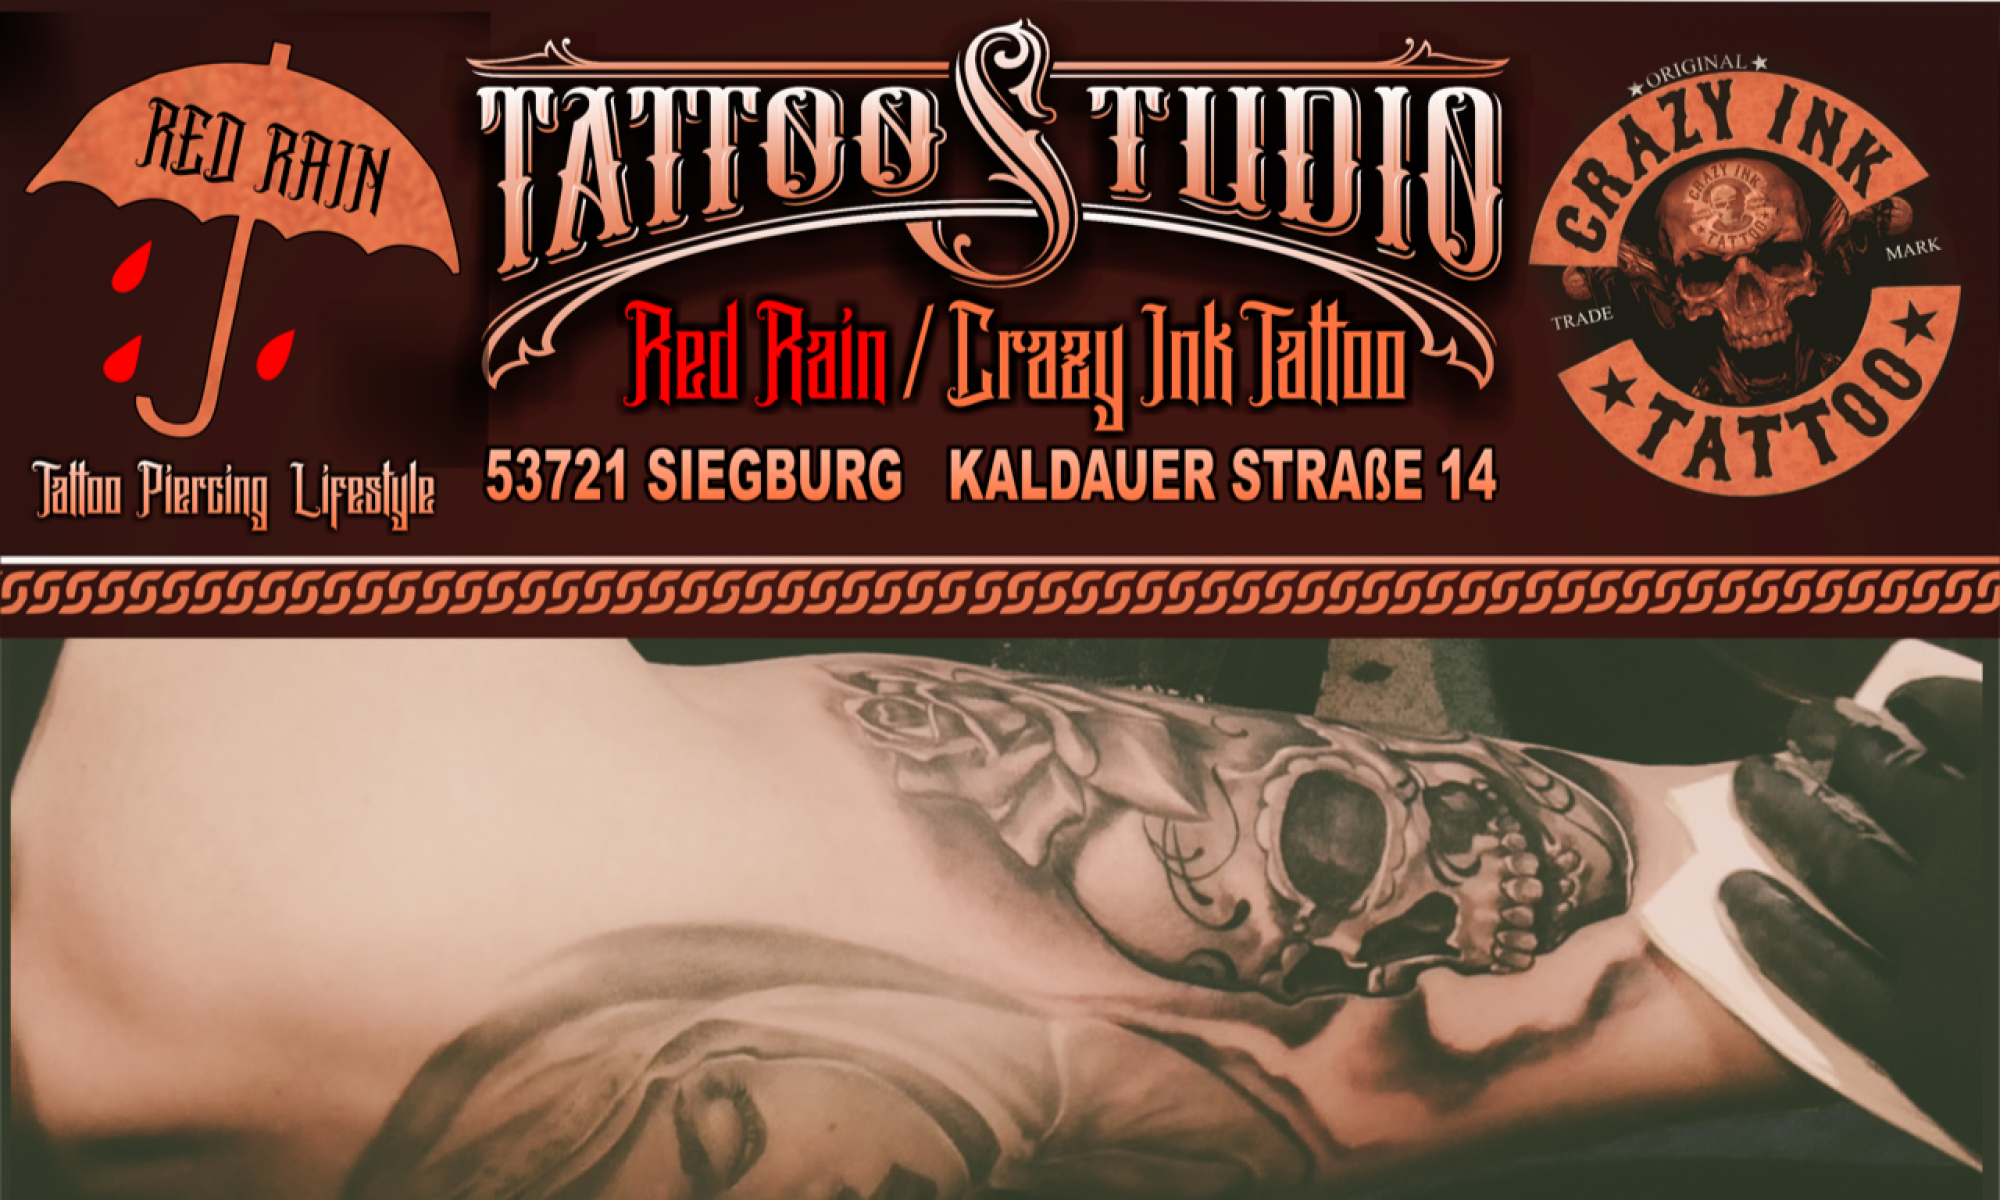 Red Rain Crazy Ink Tattoo Tattoostudio Ingo Frost